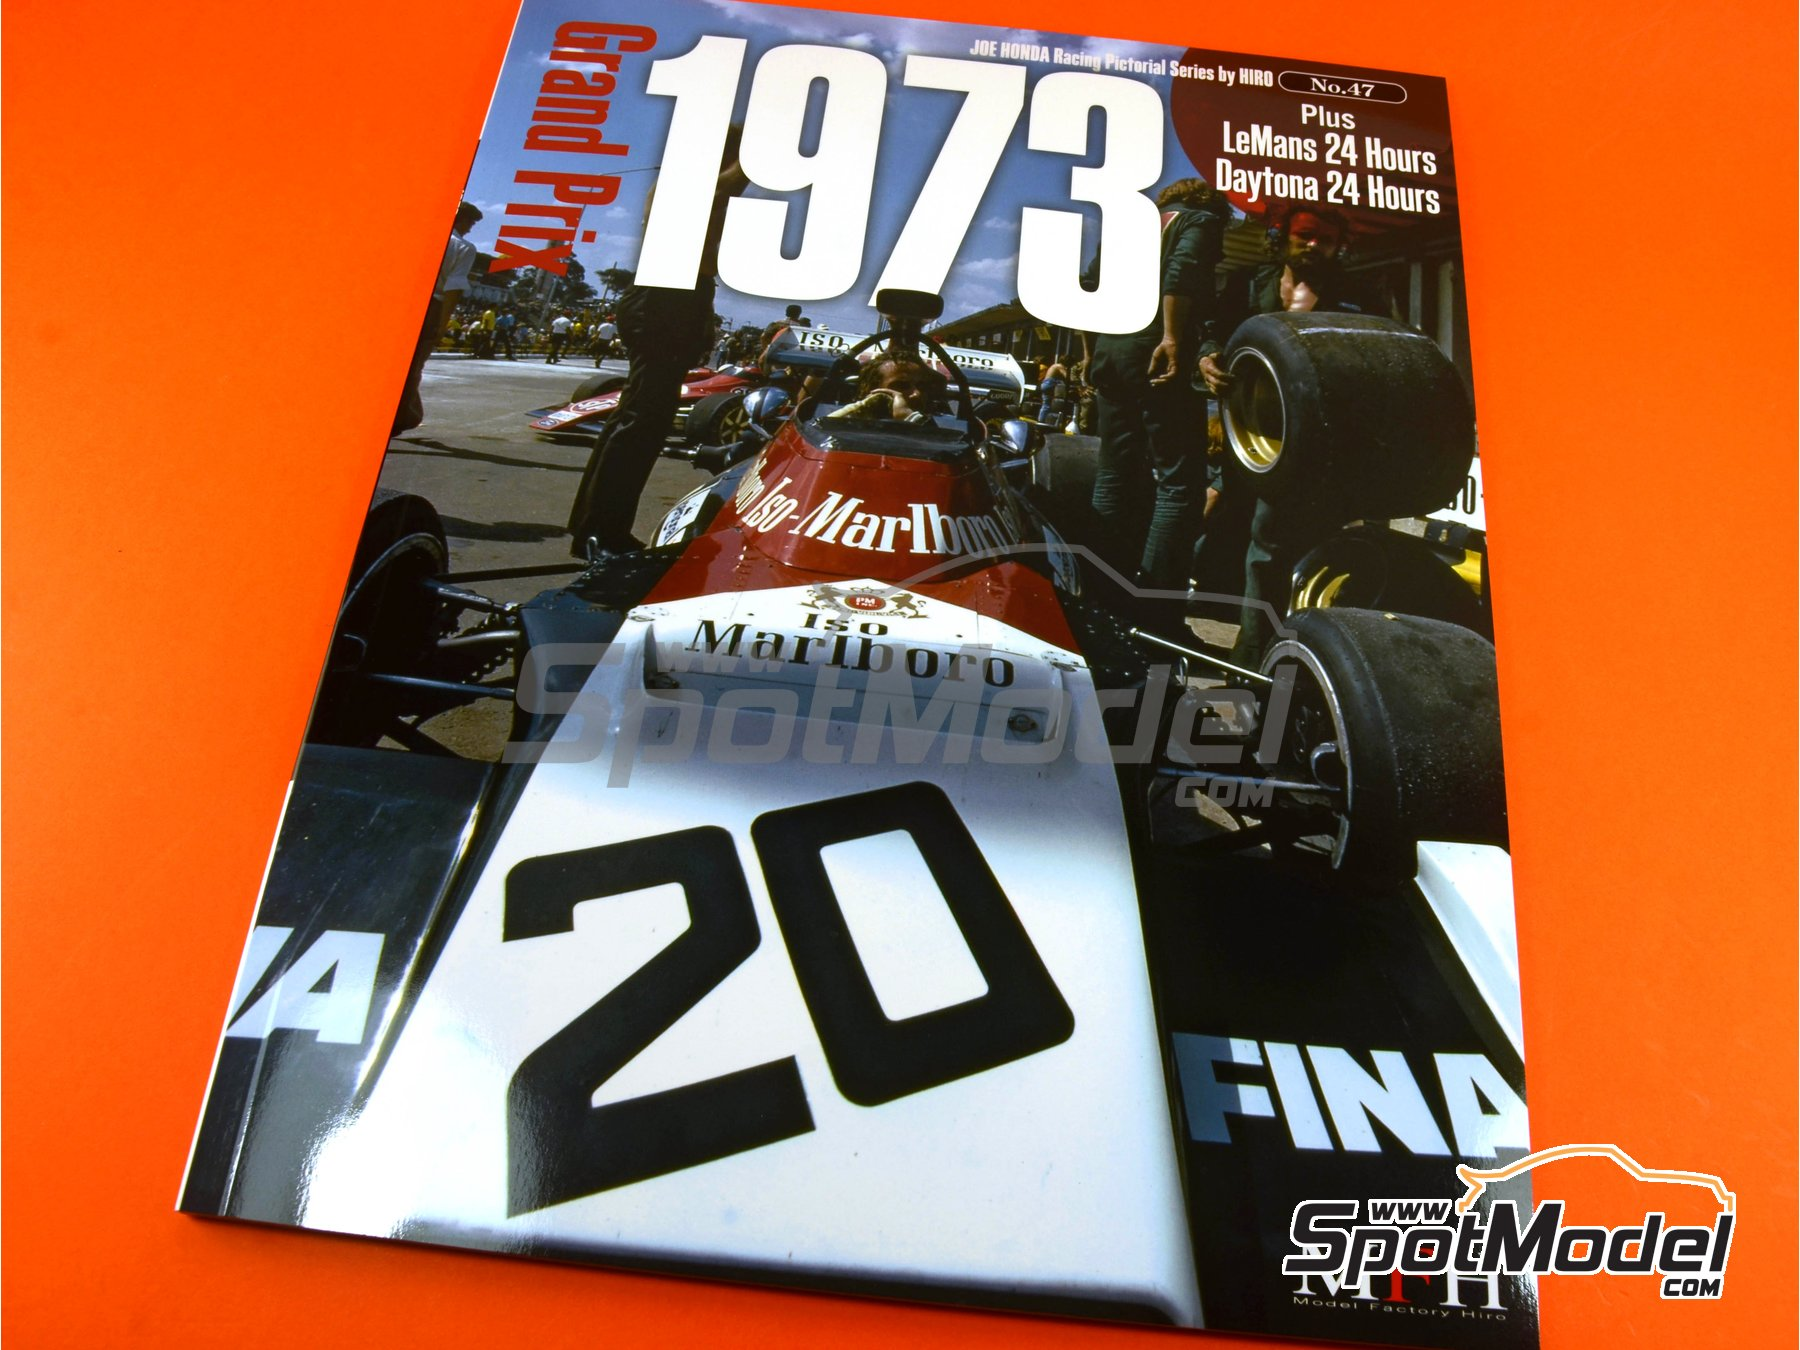 Image 1: Joe Honda Racing Pictorial Series: Grand Prix - 24 Hours of Daytona, 24 Hours Le Mans, FIA Formula 1 World Championship 1973 | Reference / walkaround book manufactured by Model Factory Hiro (ref. MFH-JH47)